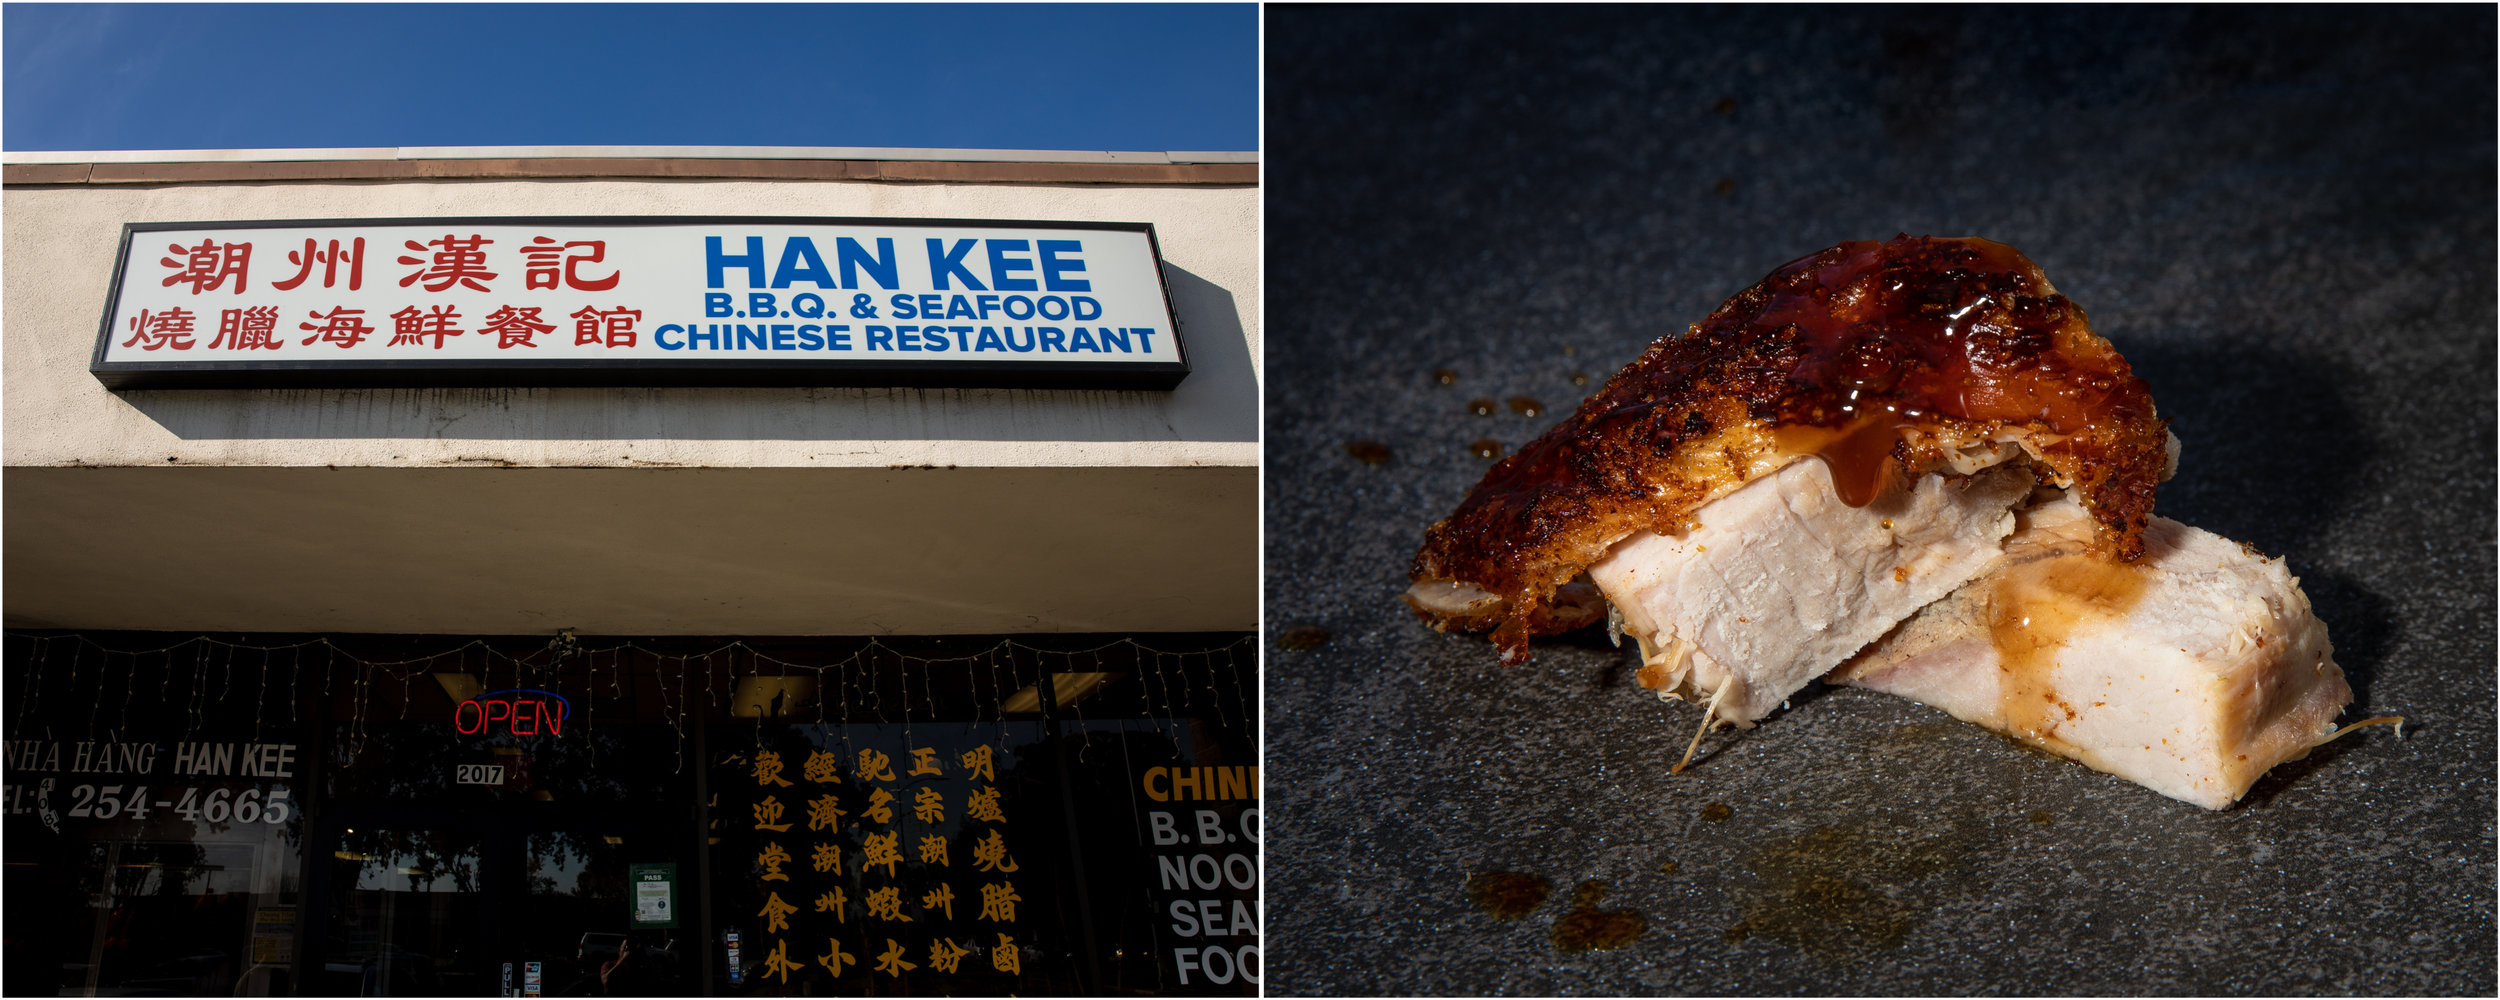 Han Kee 2  2017 Tully Rd, San Jose, CA 95122  We made our way back down to San Jose to try visit Lechon Pinoy (Filipino BBQ Restaurant) but they were sold out. This must be a good sign so we have to return. Luckily, Han Kee is located next door, so we decided to pop in to give it a try. At this point we got really thirsty and made the mistake of not bring any drinks with us. We started fantasizing about getting milk tea or any kind of drinks to rehydrate. Advice: make sure you bring some water.   Taste:  We did not enjoy the taste of this meat. there wasn't anything that stood out because it was plain and dry. The sauce that came with it was lacking, as well.  Texture:  We didn't not receive much skin with the order but what we got had good texture. The skin was crispy but not super fluffy and it also had a nice smokey taste to it.  Price:  The price of the pound that we order was roughly the same as the first two locations.  Verdict:  Overall, it was this location was at the bottom of our favorite list even though the skin was good.